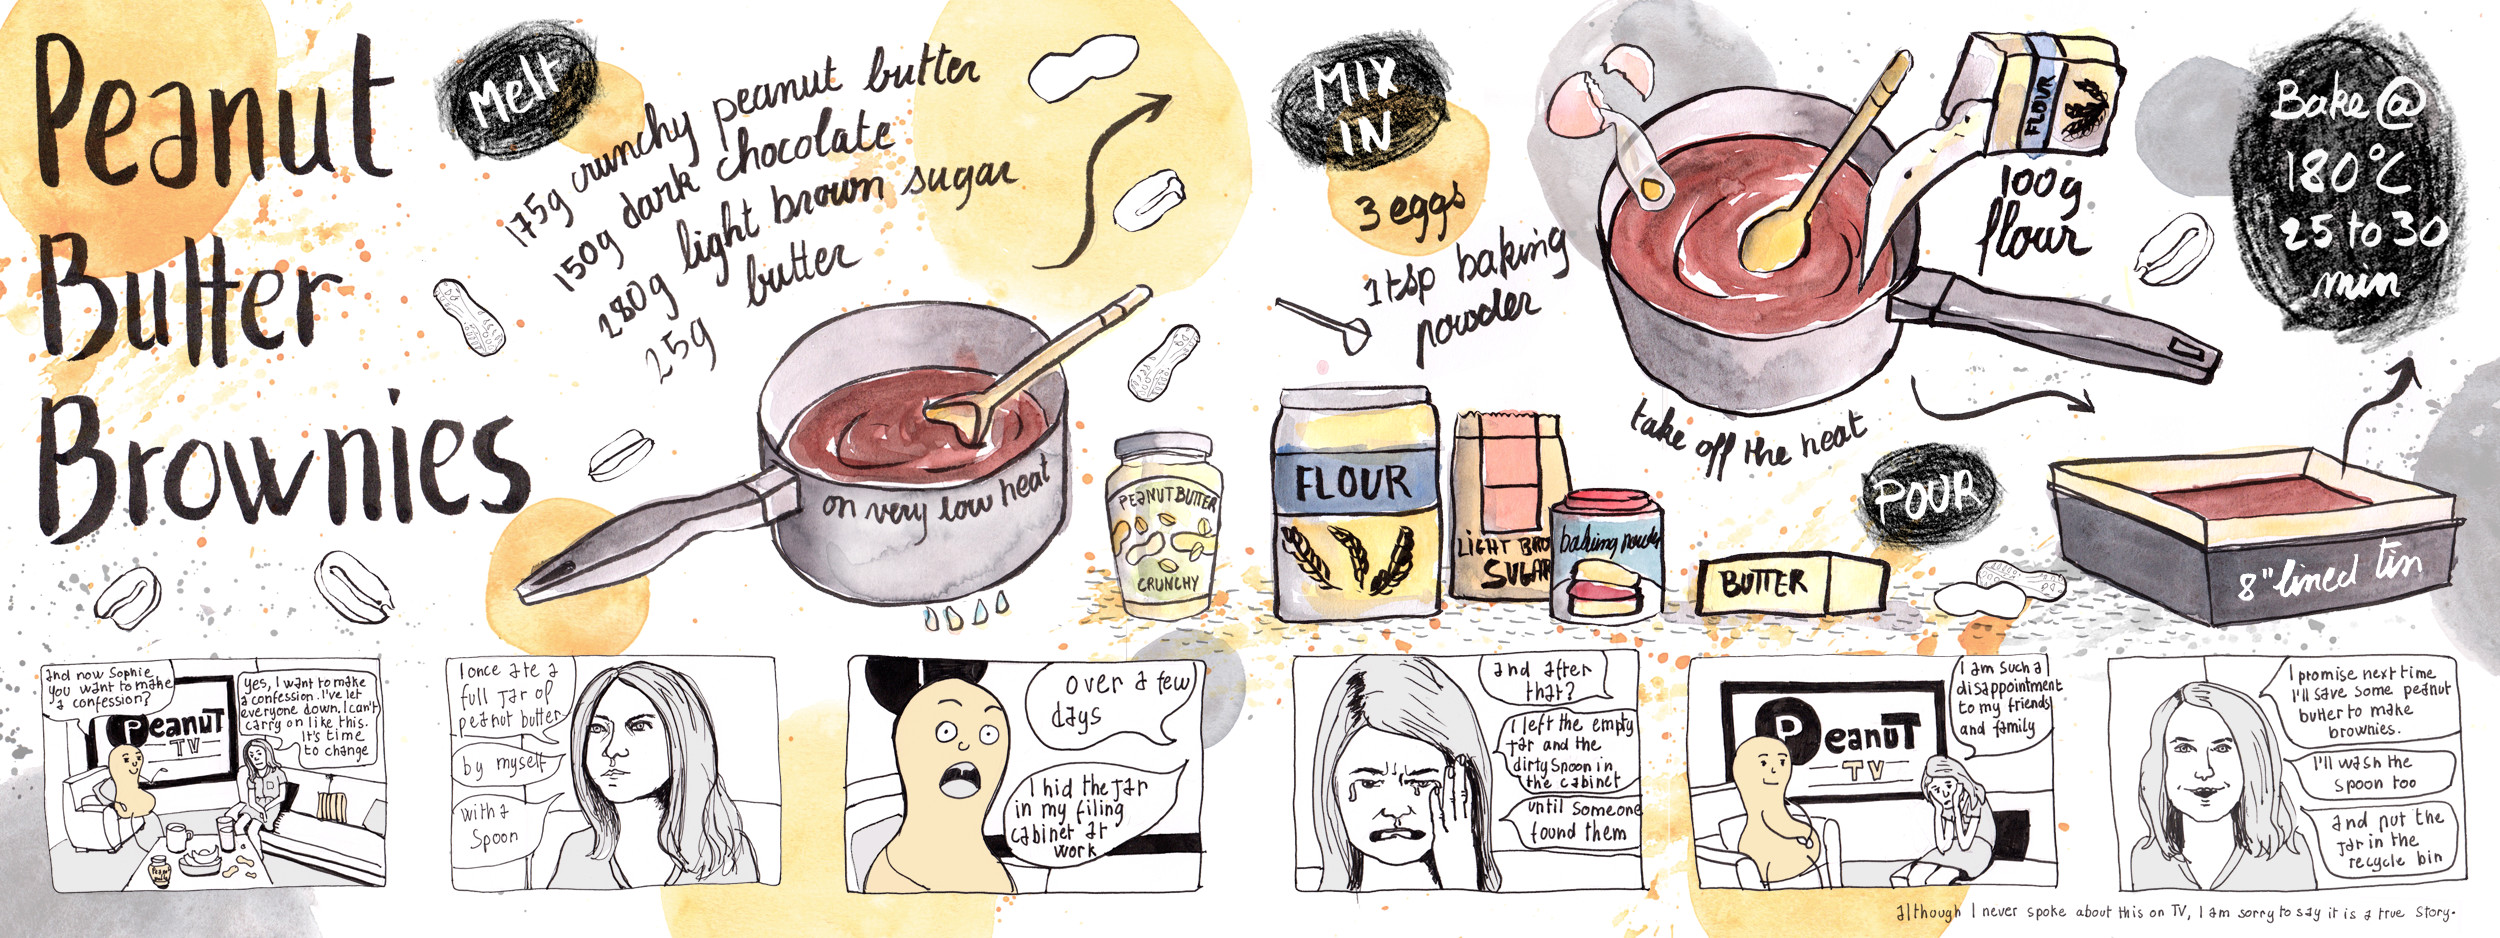 Peanut Butter Brownies - recipe illustrated by Sophie Peanut